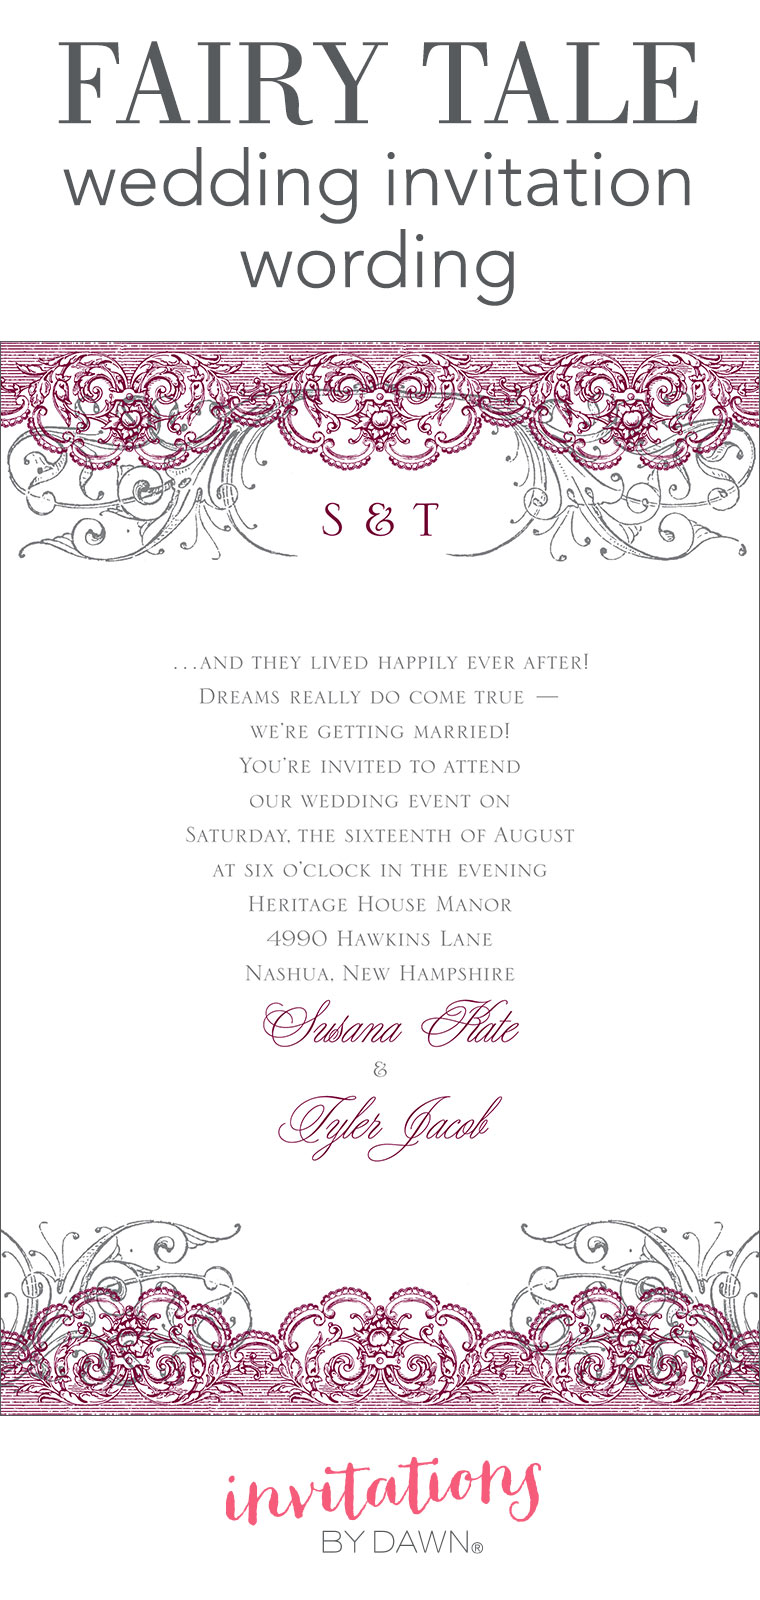 Fairy tale wedding invitation wording invitations by dawn fairy tale wedding invitation wording stopboris